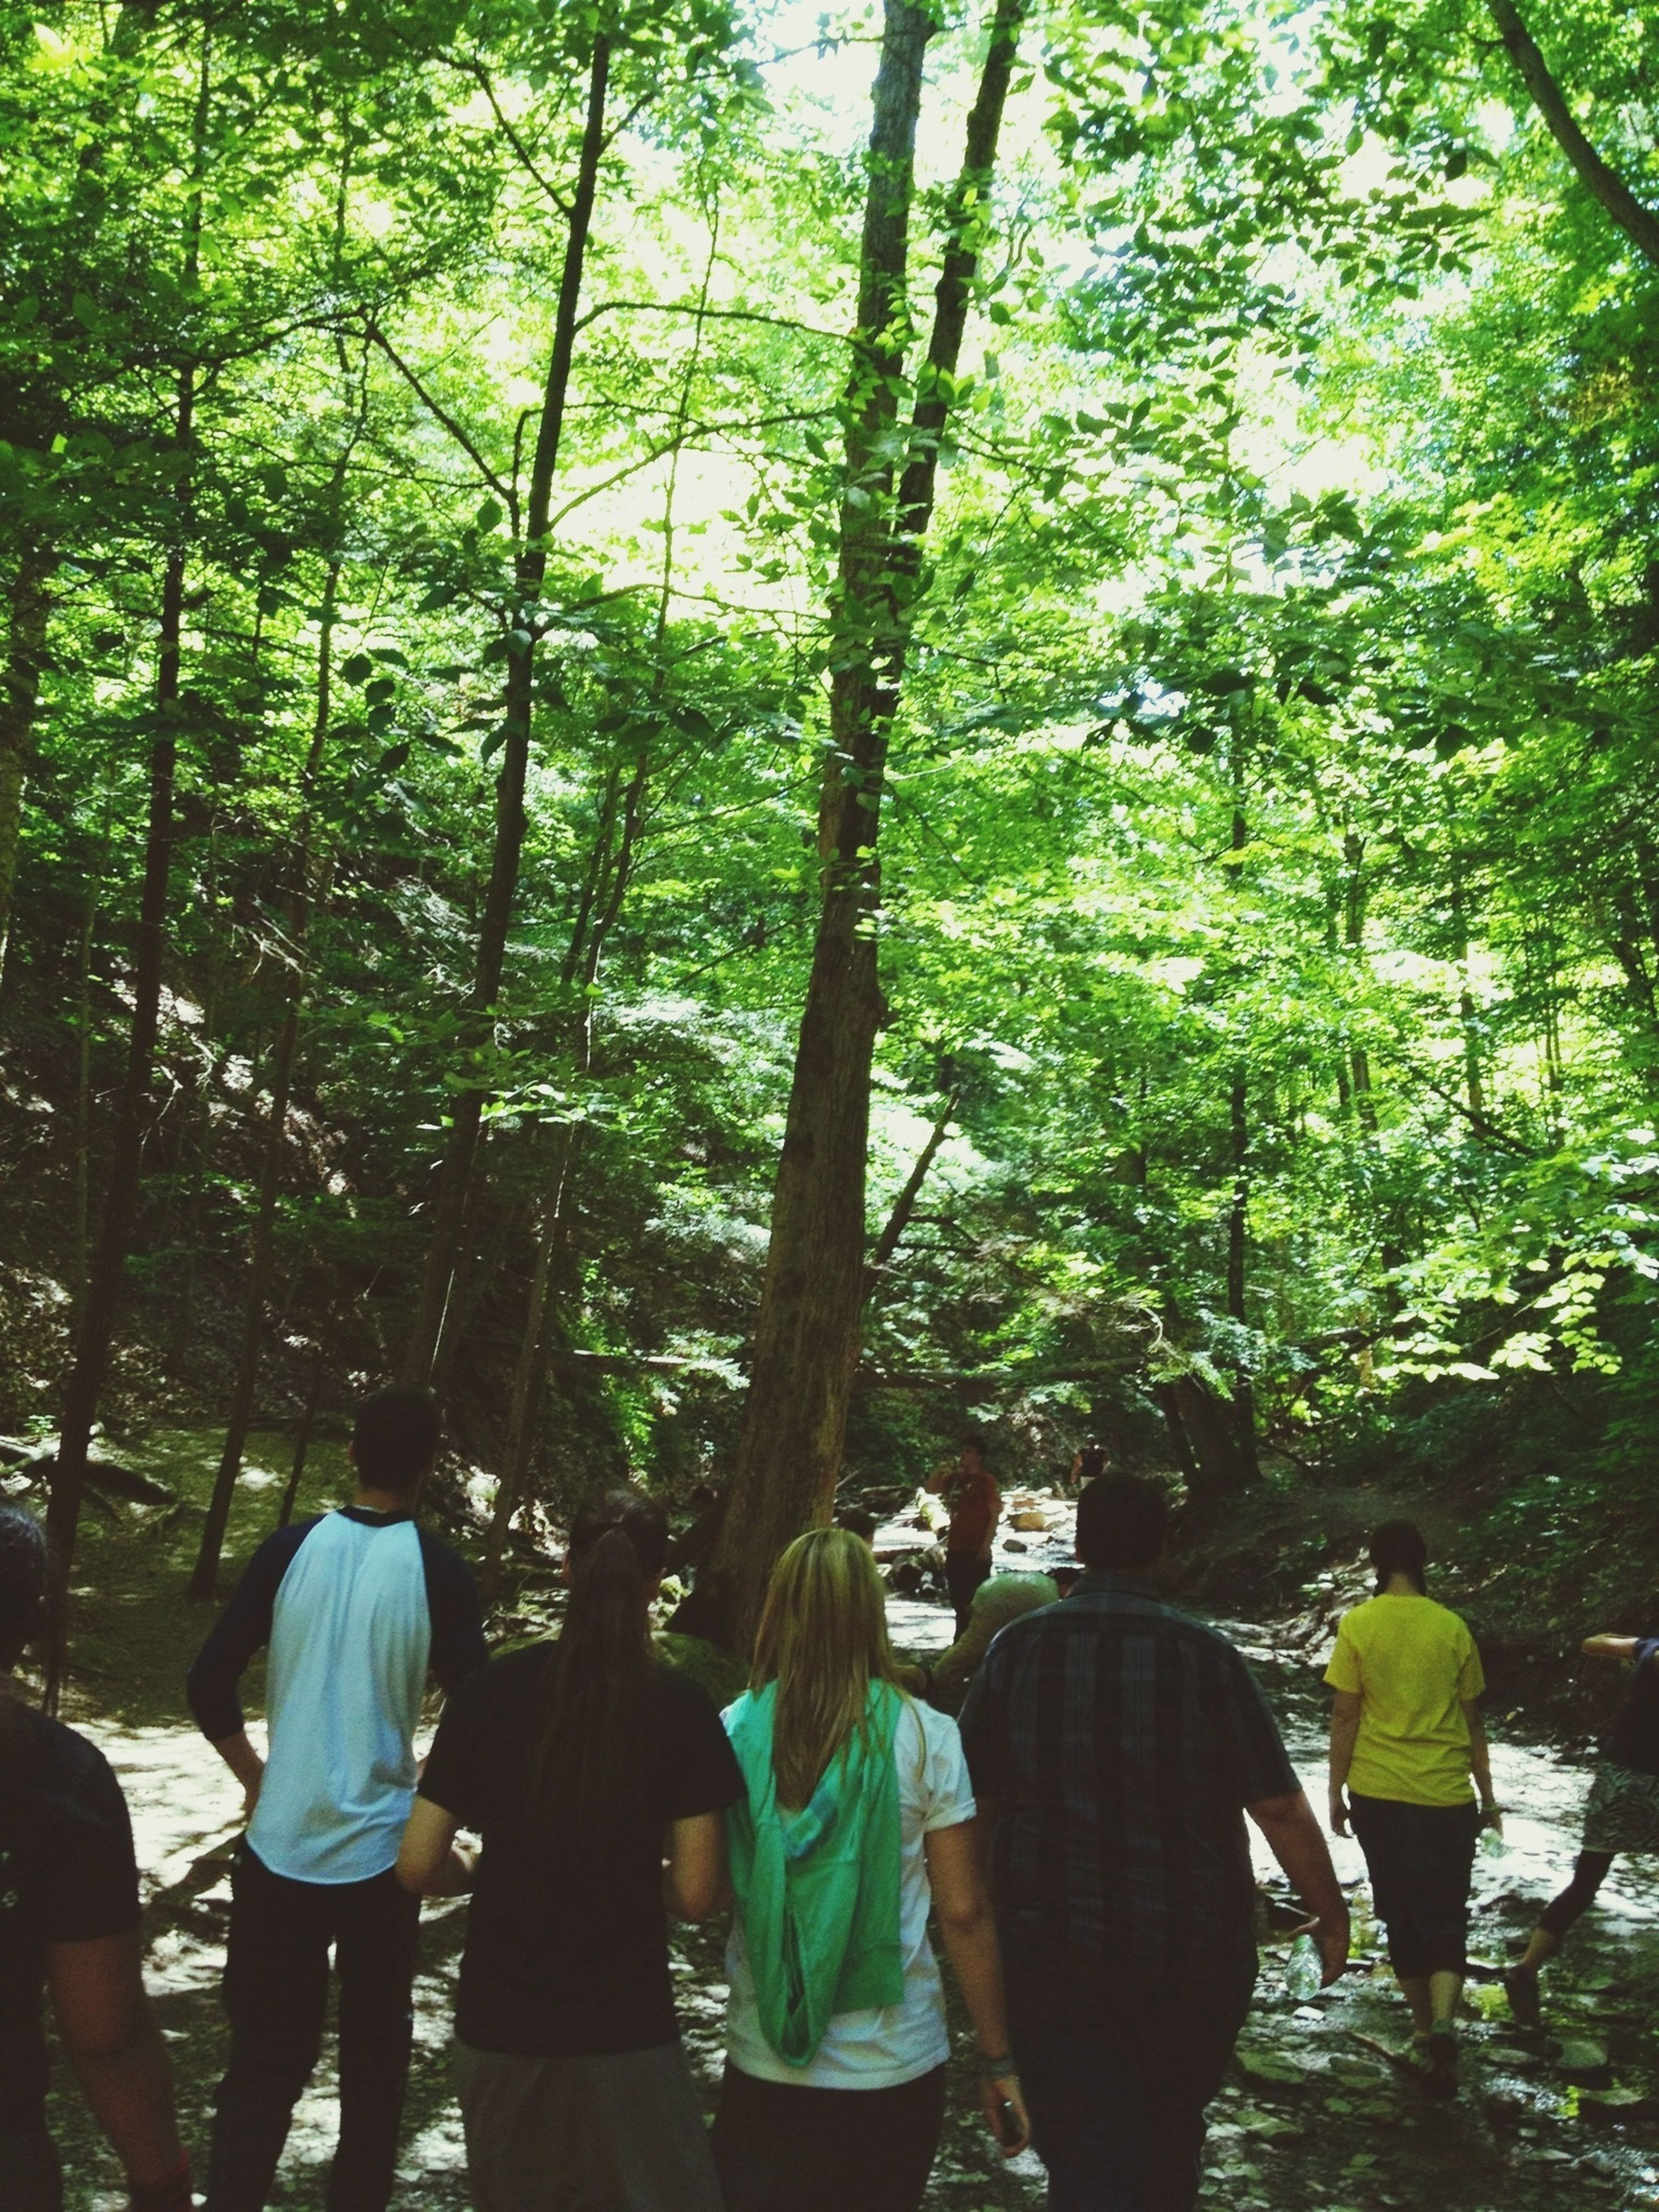 tree, lifestyles, rear view, leisure activity, men, person, togetherness, walking, growth, casual clothing, forest, full length, branch, nature, bonding, love, green color, large group of people